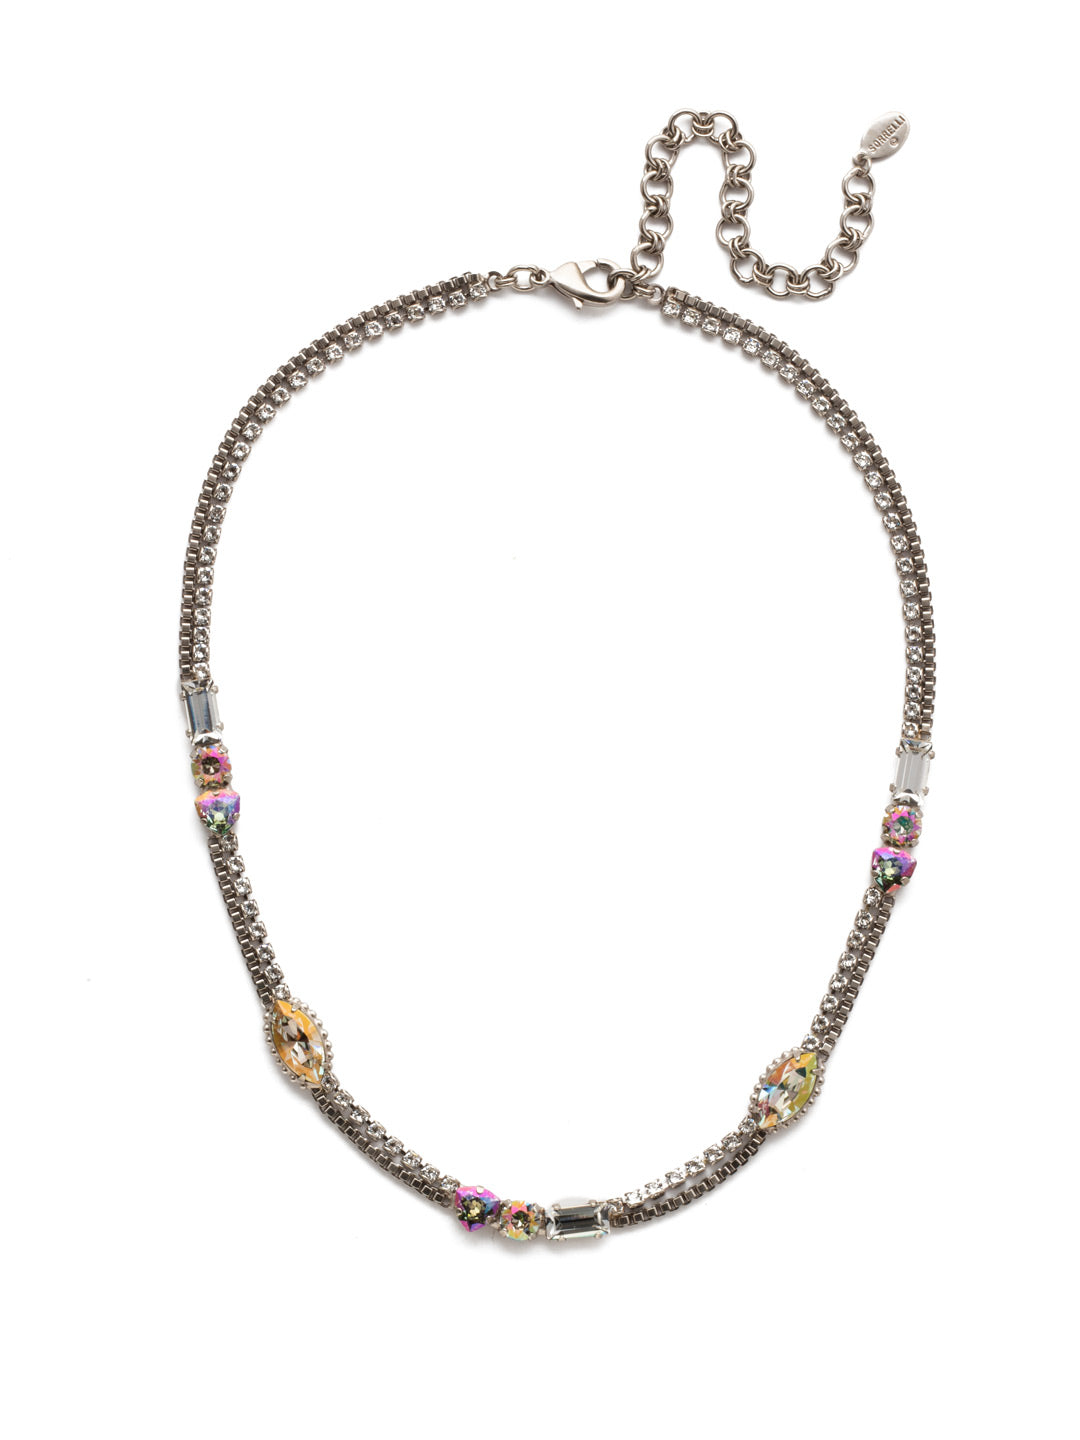 Claretta Tennis Necklace - NEP14ASCRE